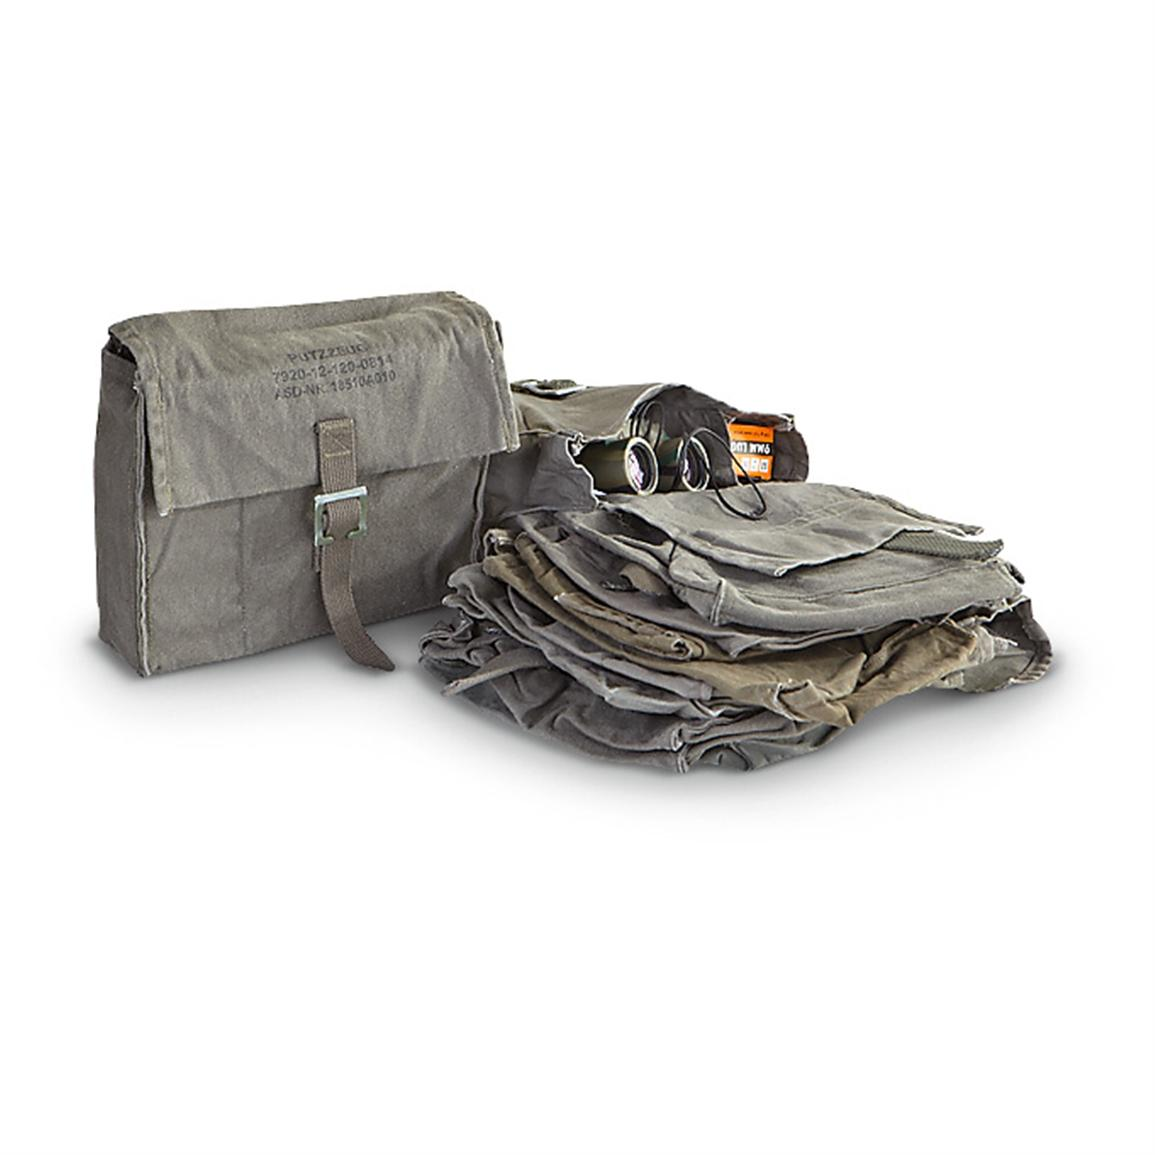 10 Used German Military Surplus Ditty Bags, Olive Drab; 120-cu. in. capacity